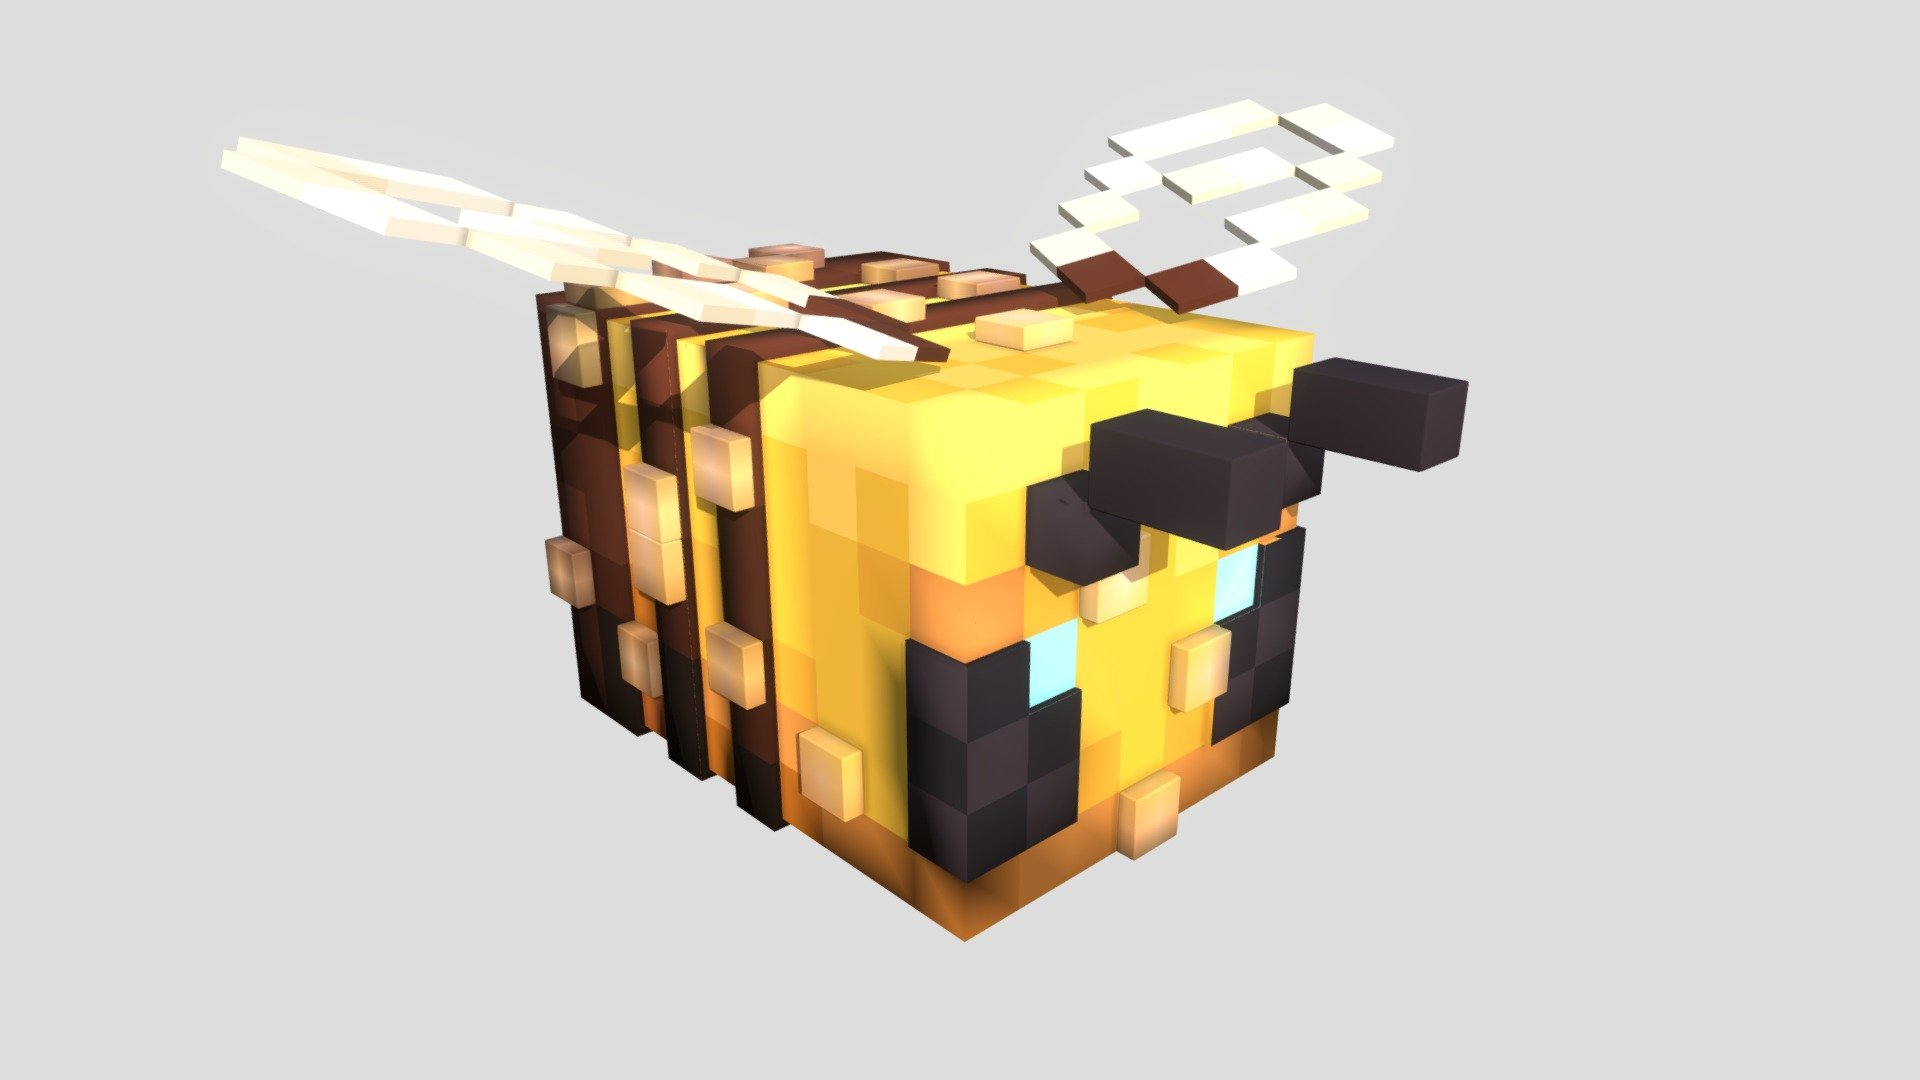 Minecraft Bee with polls 3D model by Boxhead3d ( Boxhead3d